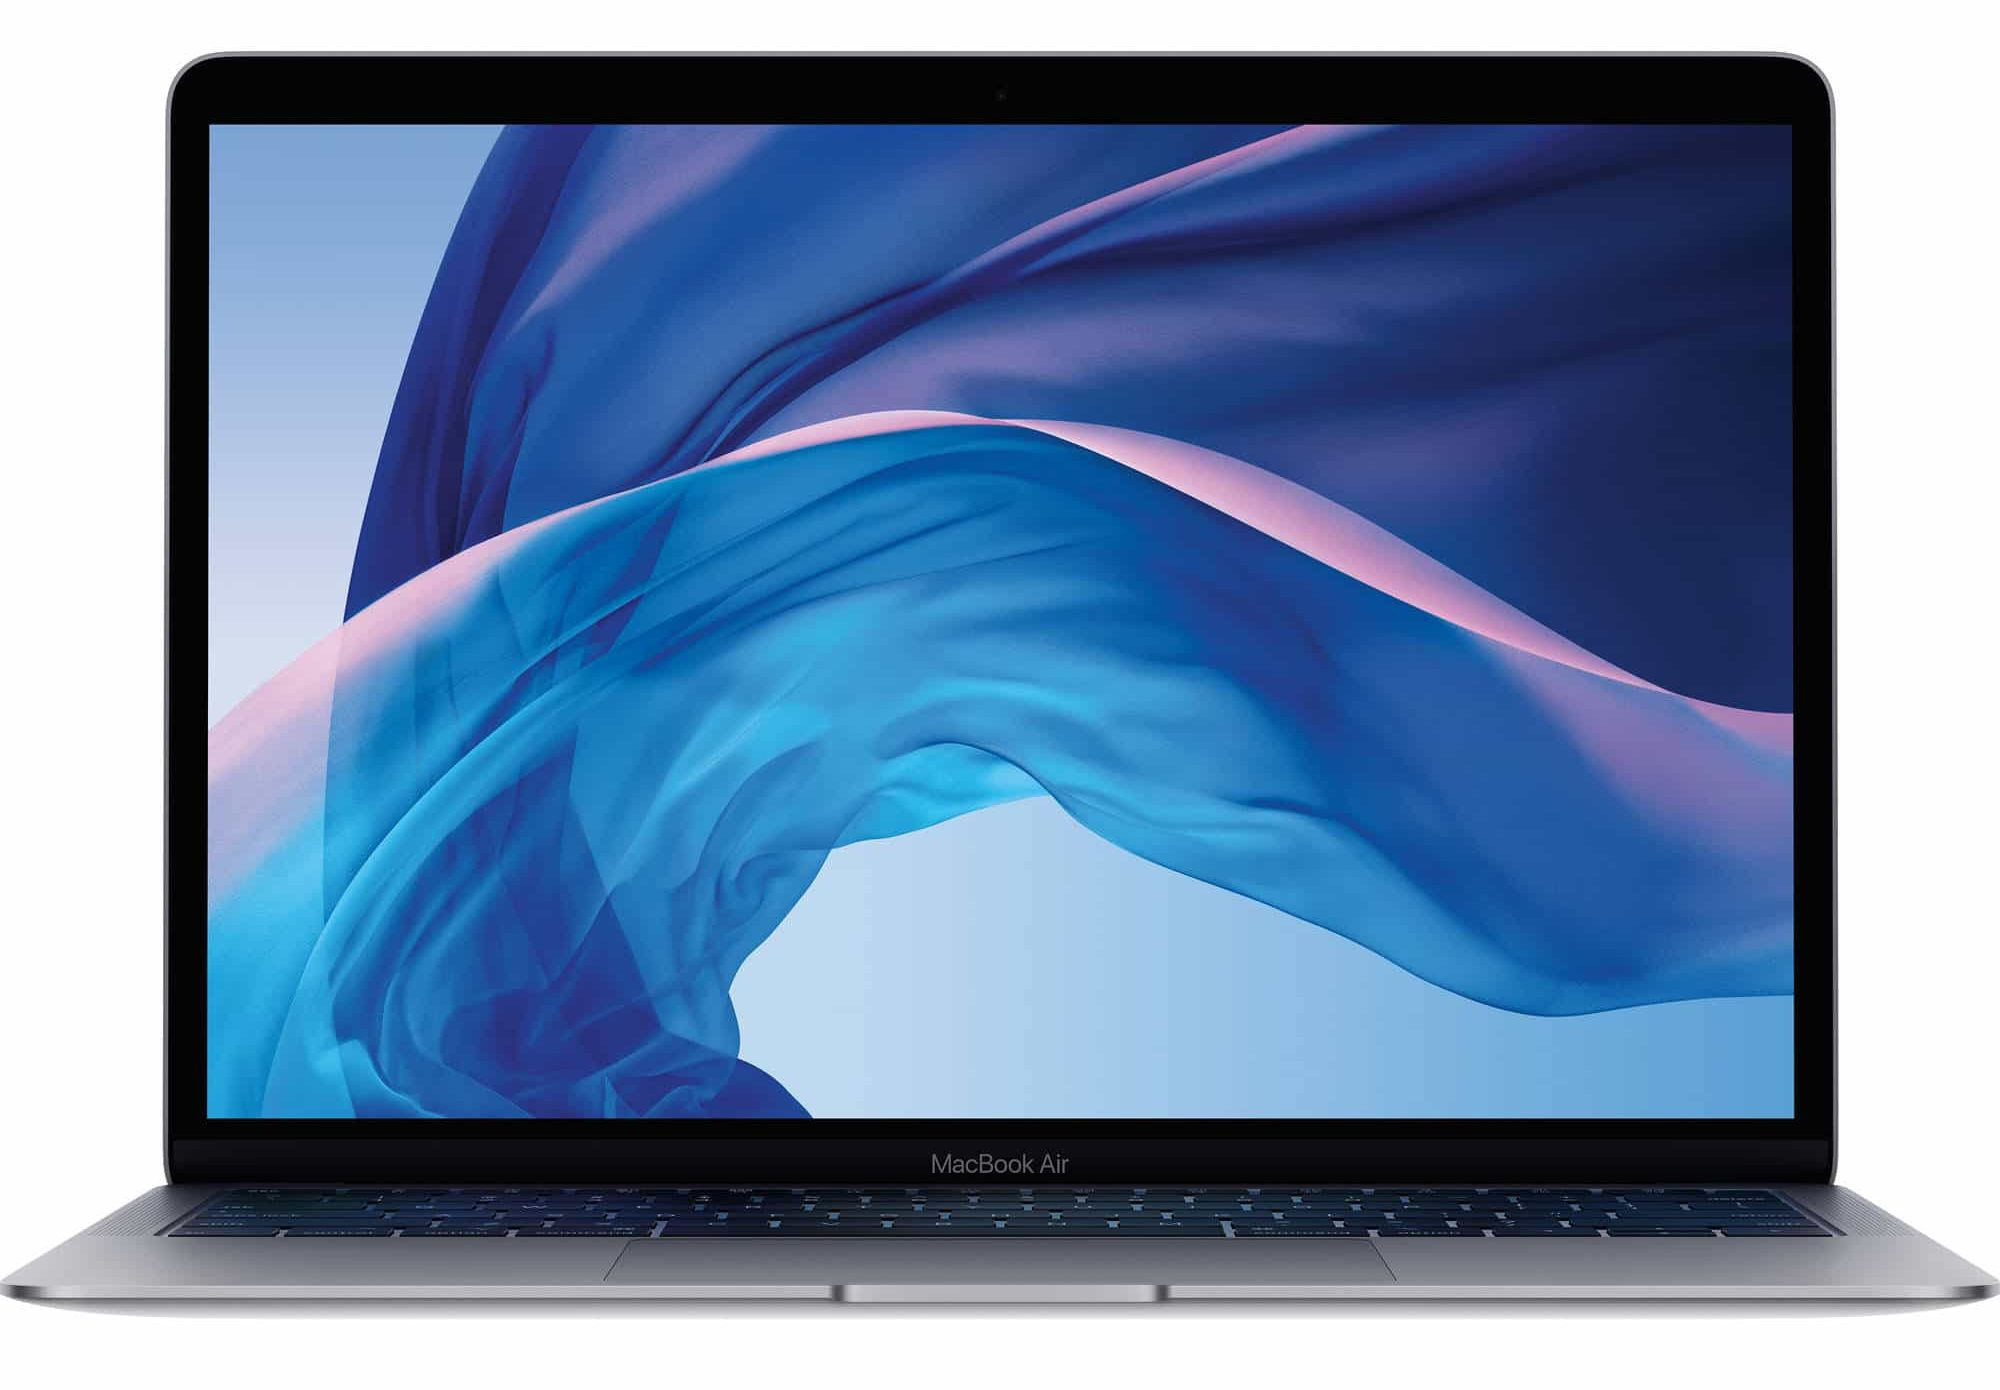 The late-2018 MacBook Air with Retina display.